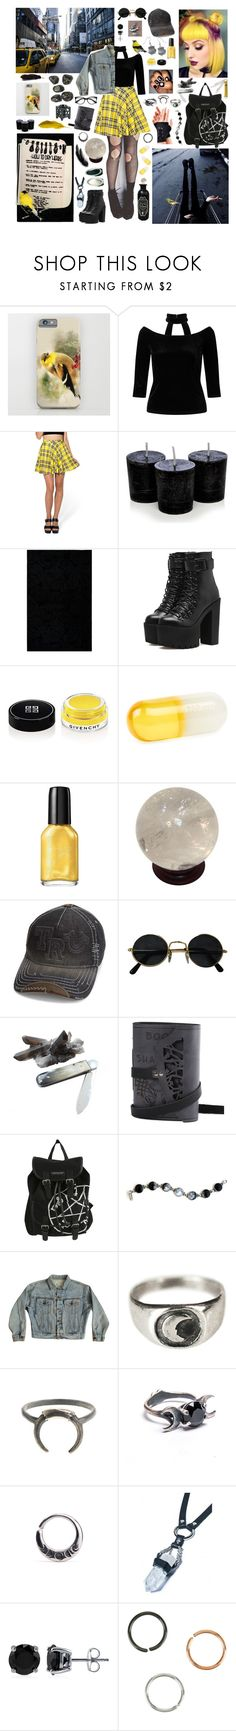 """""""Goldfinch Witch"""" by valaquenta ❤ liked on Polyvore featuring Miss Selfridge, Kate Spade, Nemesis, Givenchy, Jonathan Adler, Sally Hansen, True Religion, Roost, Hot Topic and Jordache"""